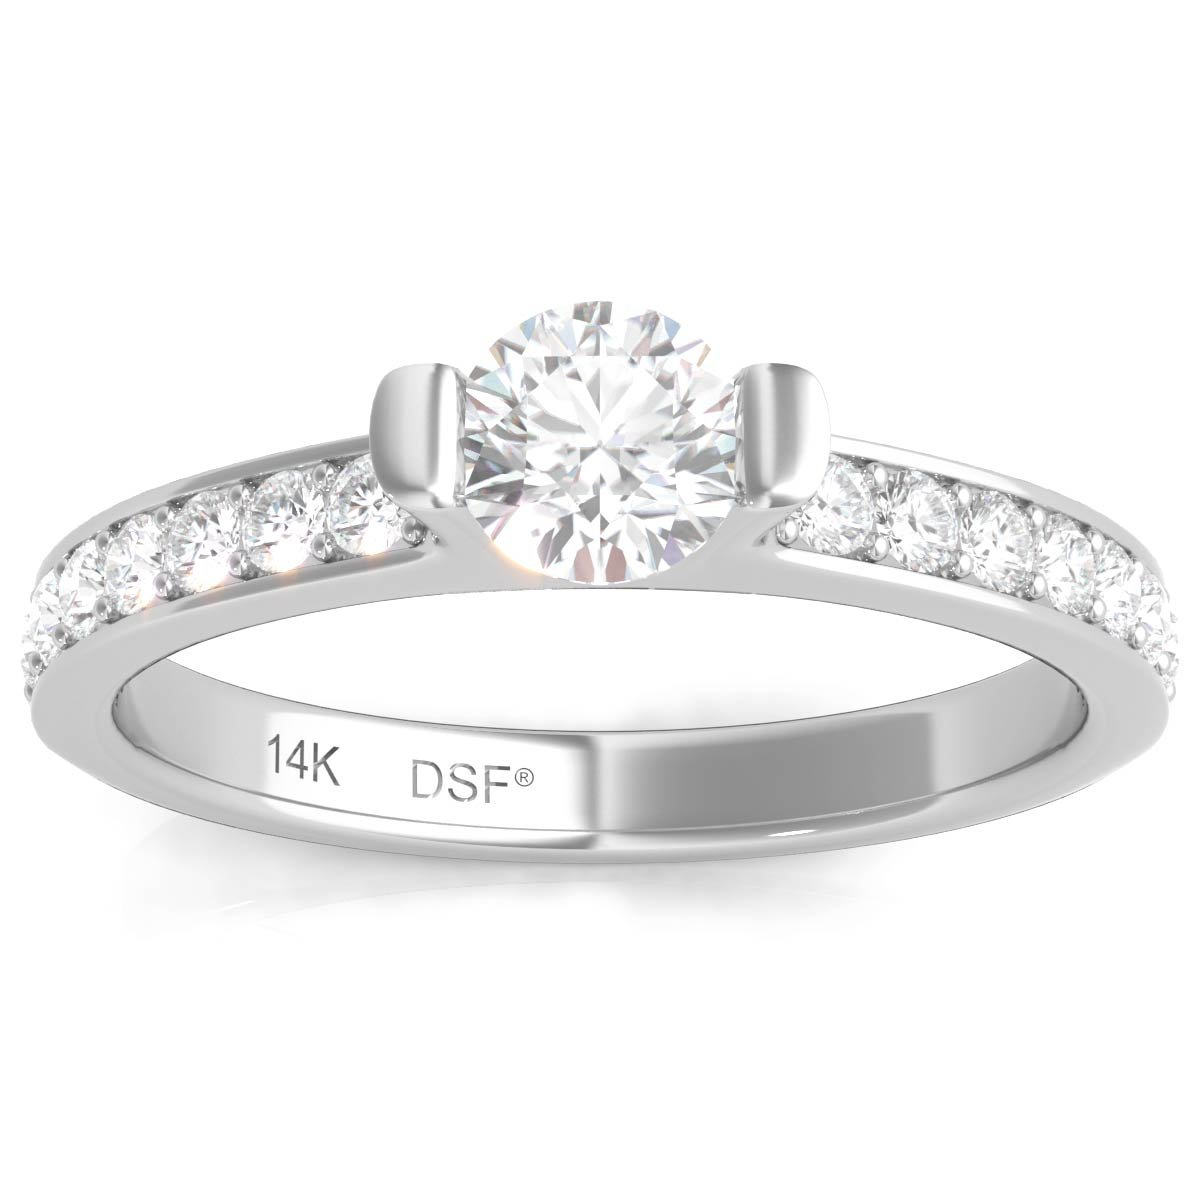 Diamond Studs Forever 14K White Gold Diamond Engagement Ring (3/4 Ct tw, IGI USA Certified GH/I1)